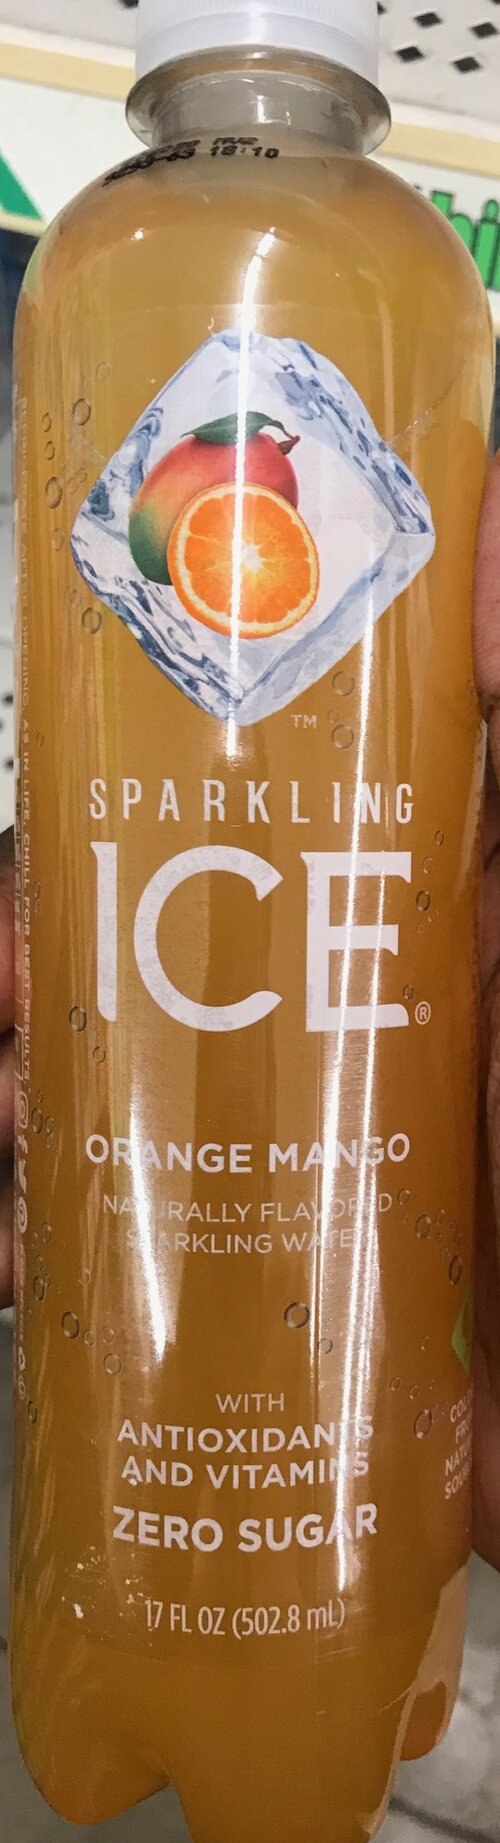 Keto-friendly drink at Dollar Tree - Sparkling Ice